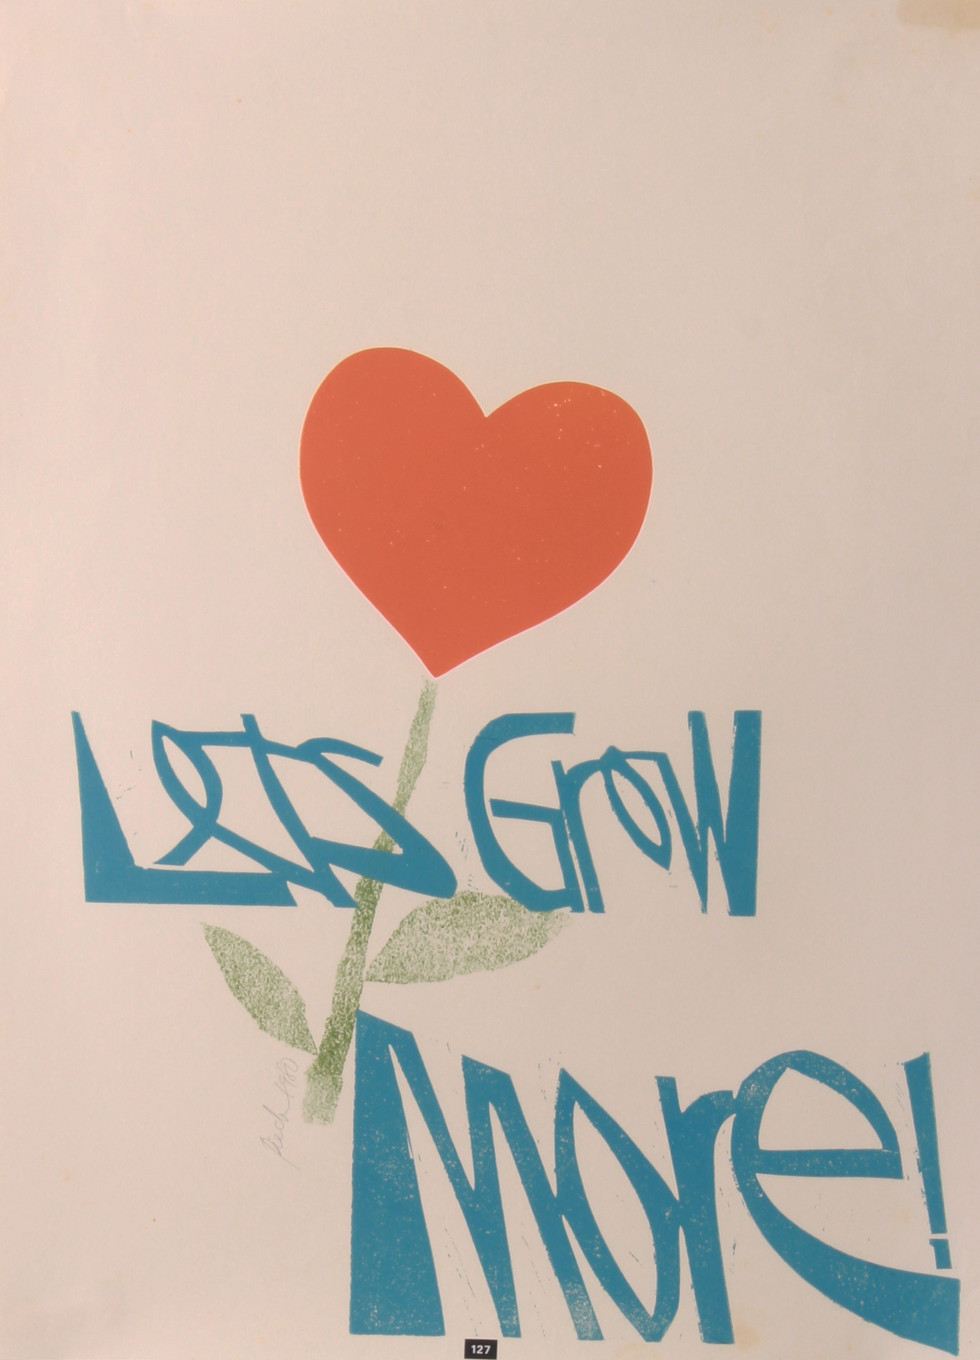 Let's Grow More!, 1980